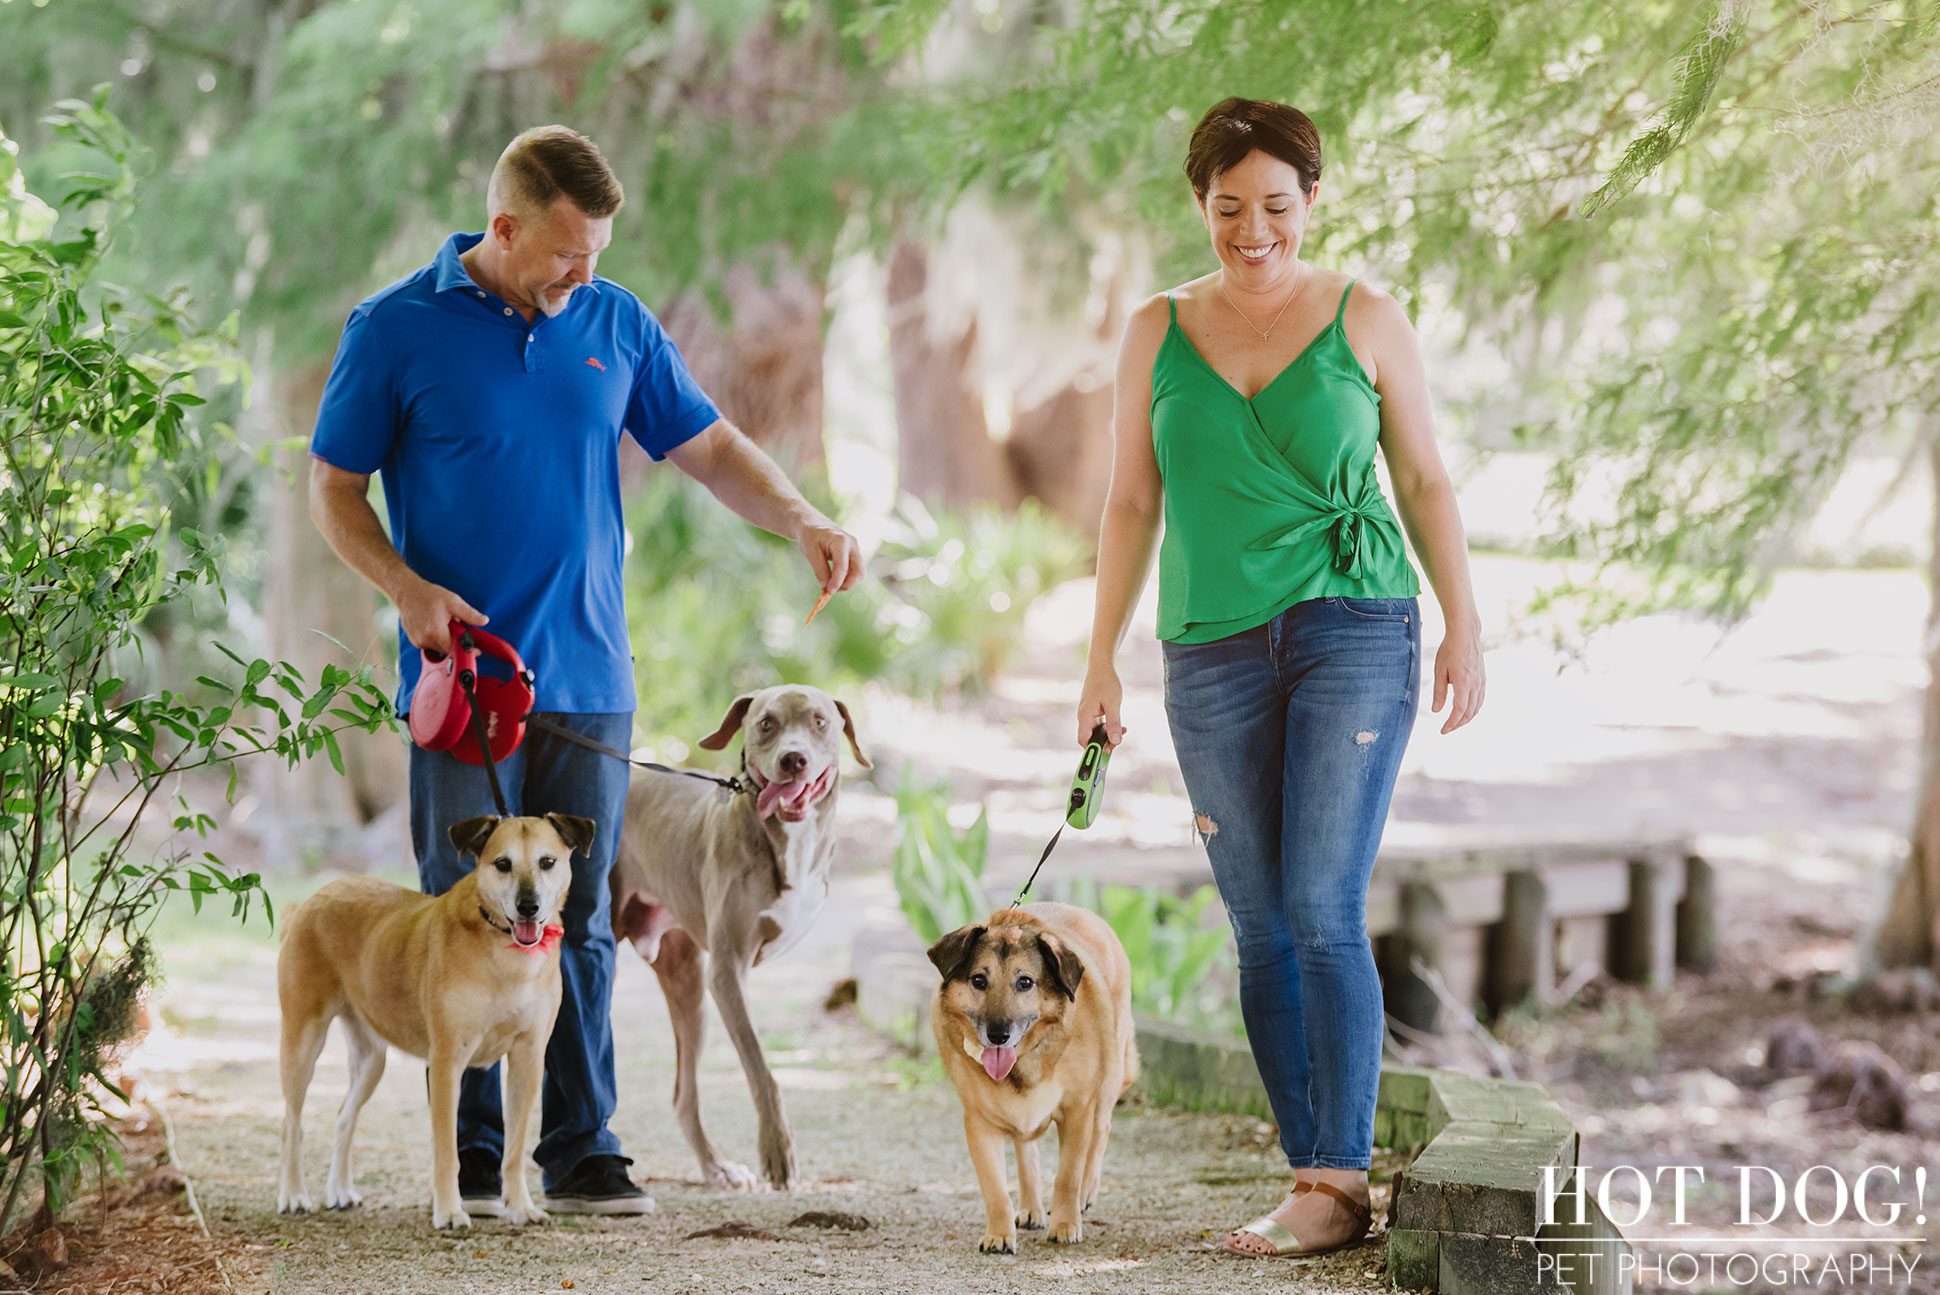 Tobie, Kimmie & Riki | Winter Garden Pet Photography